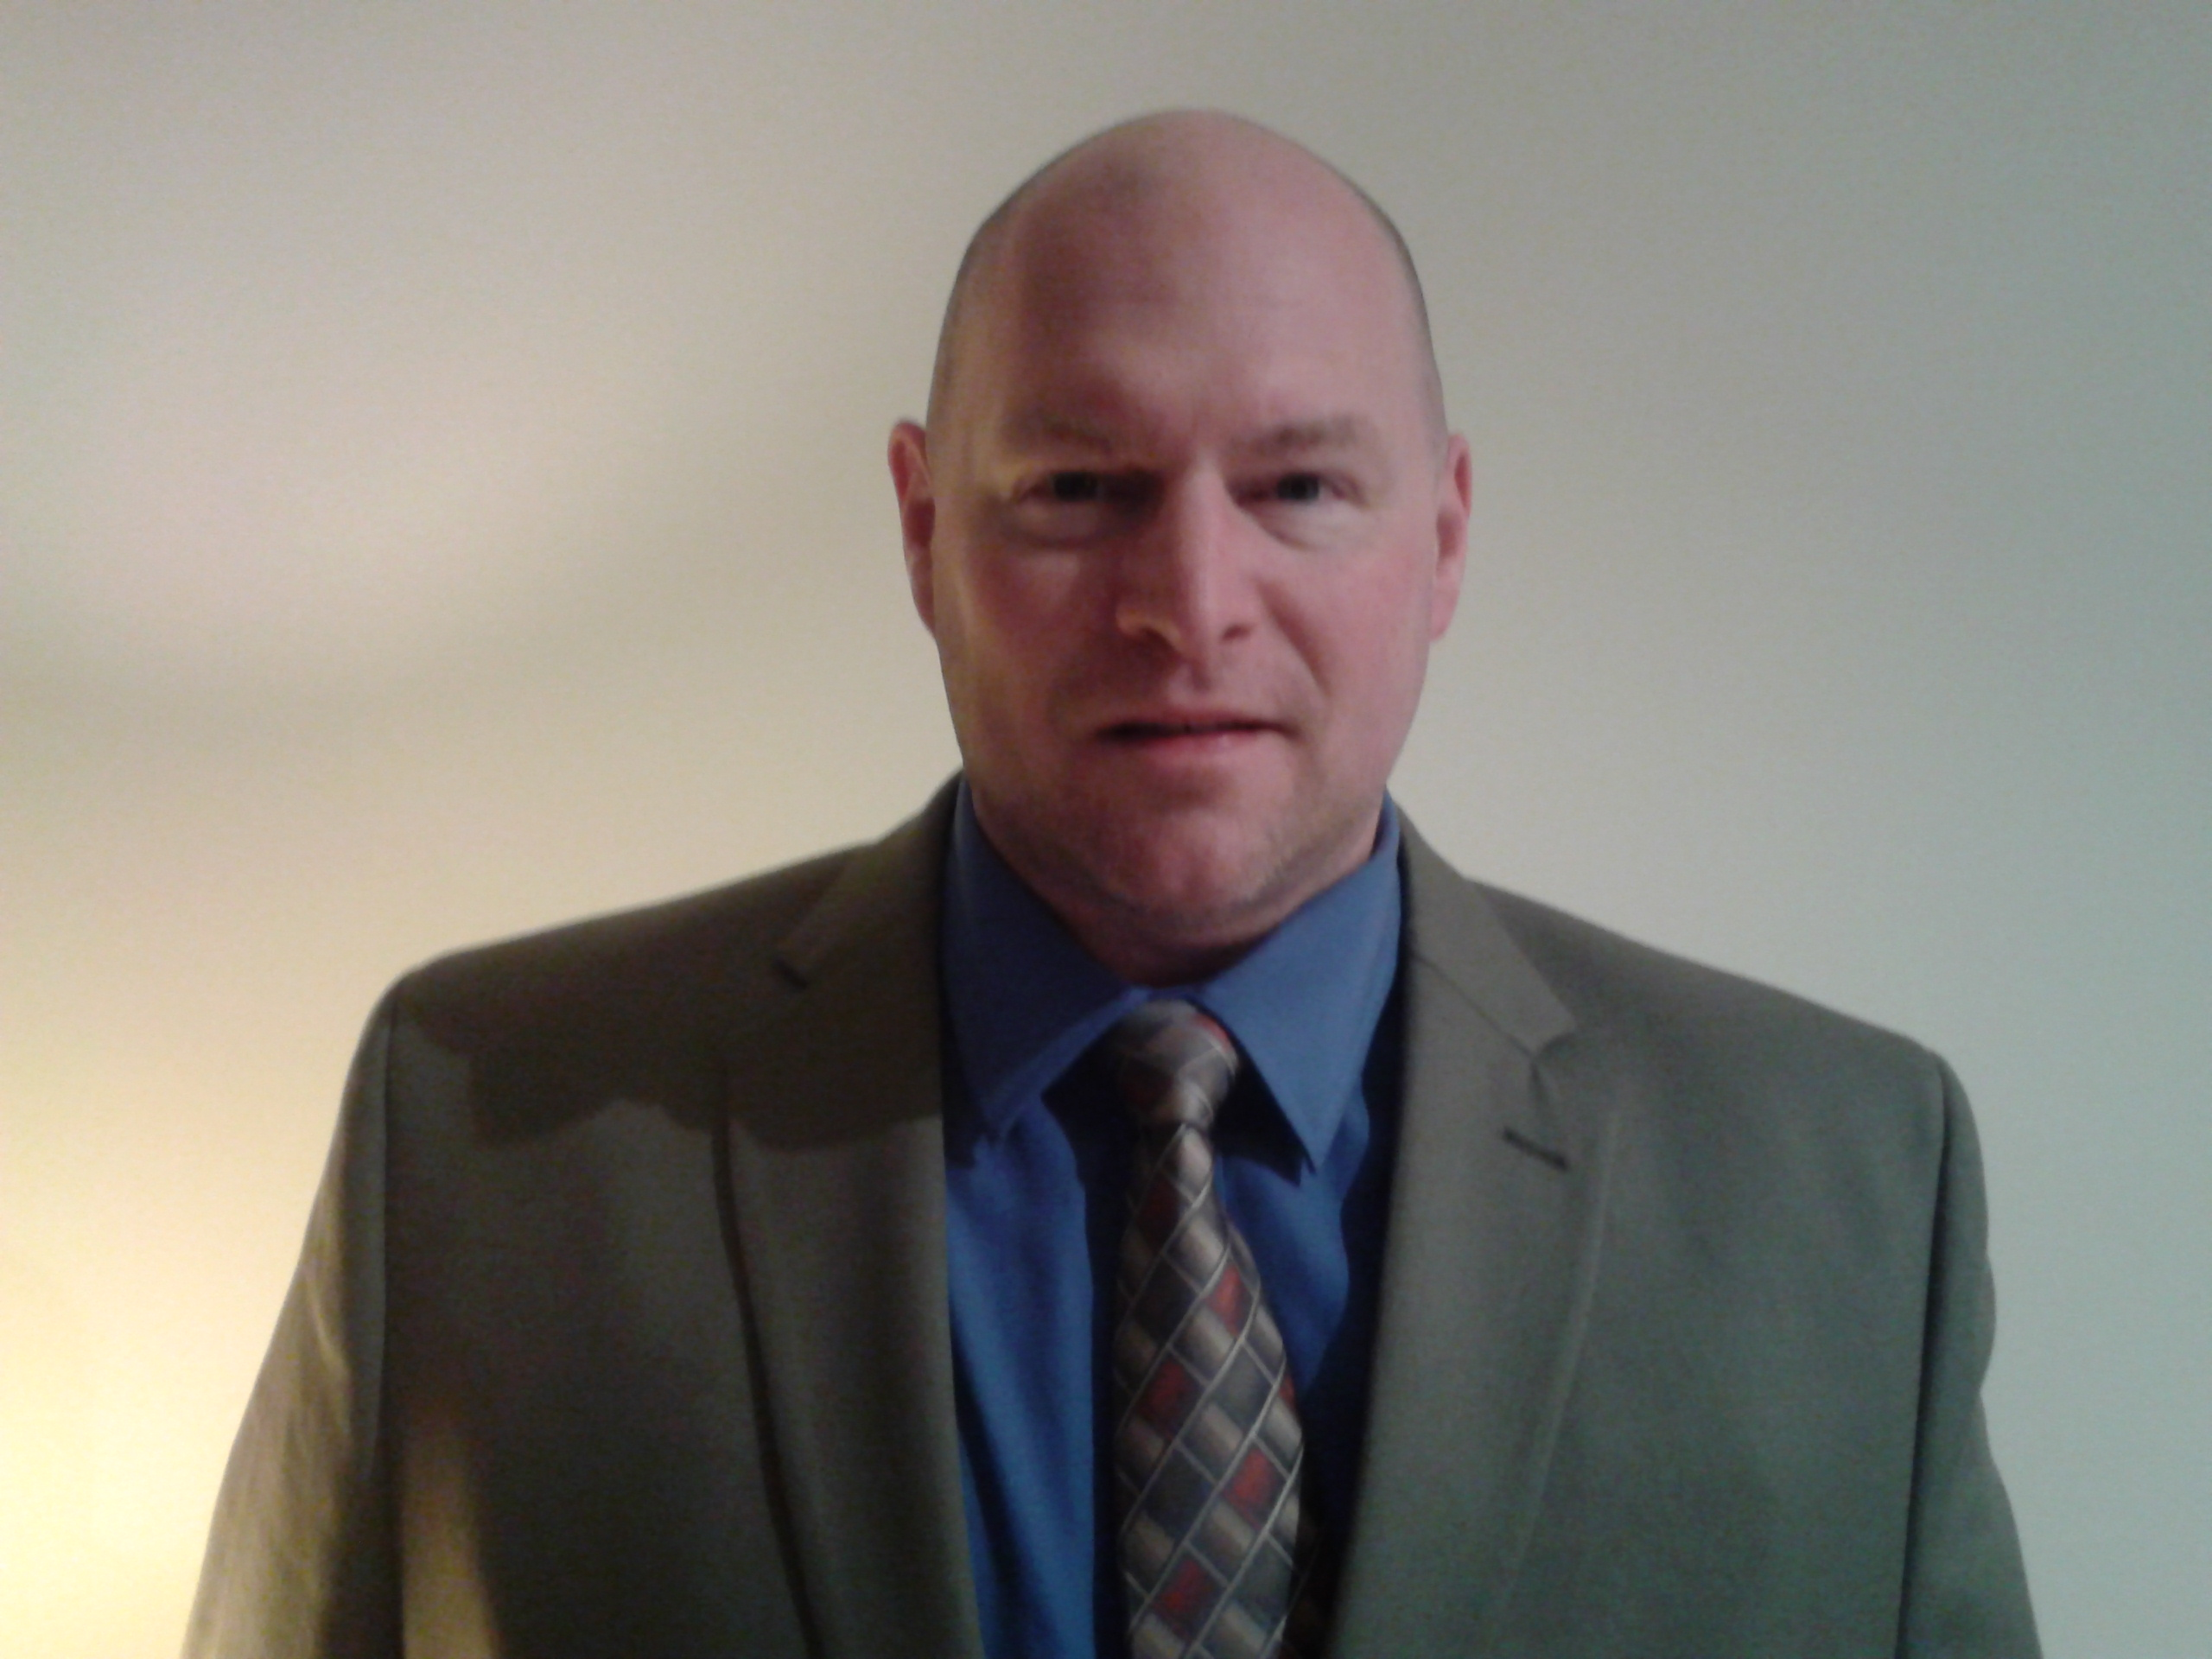 Wa private investigator certified trainer keith shores olympic keith shores xflitez Gallery